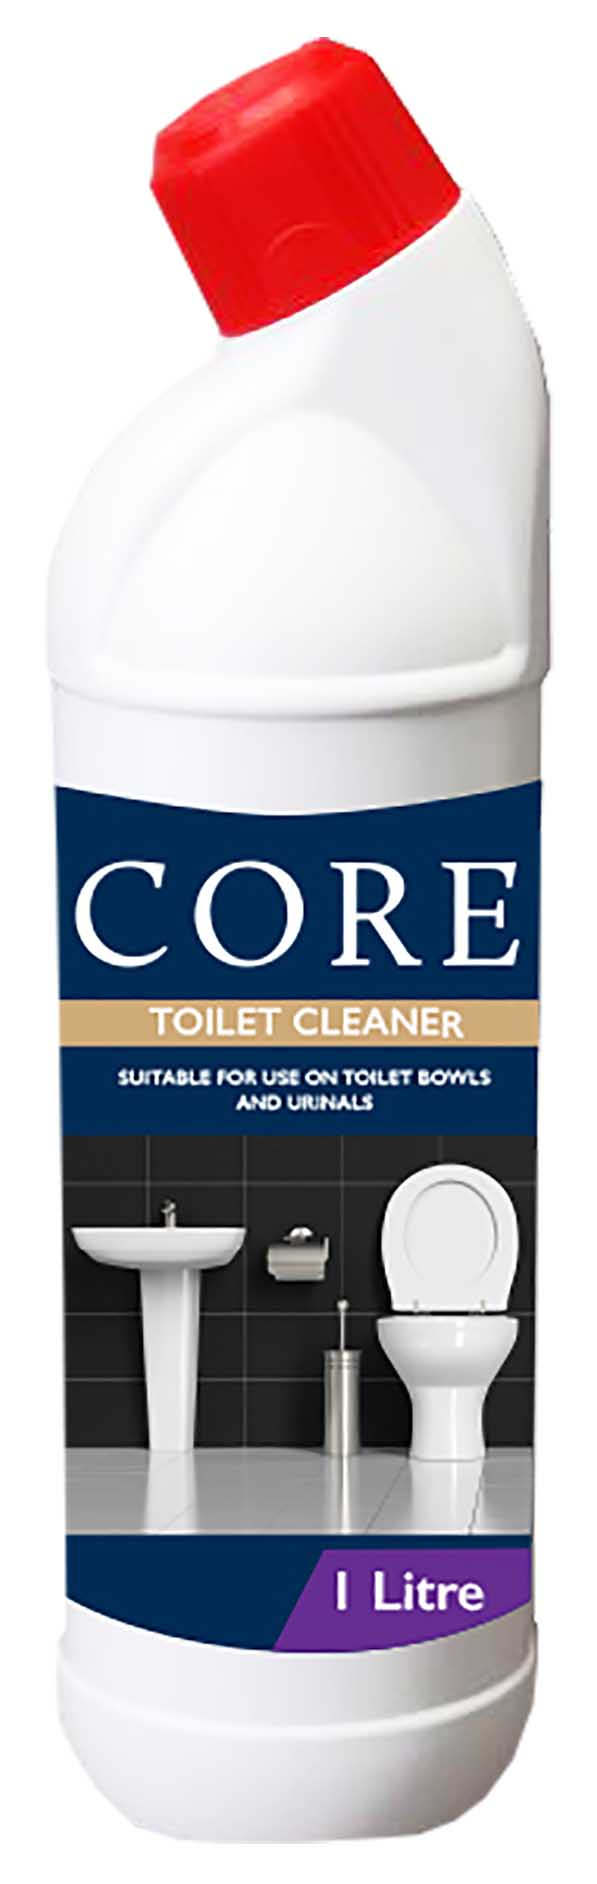 Core Toilet Cleaner ltr